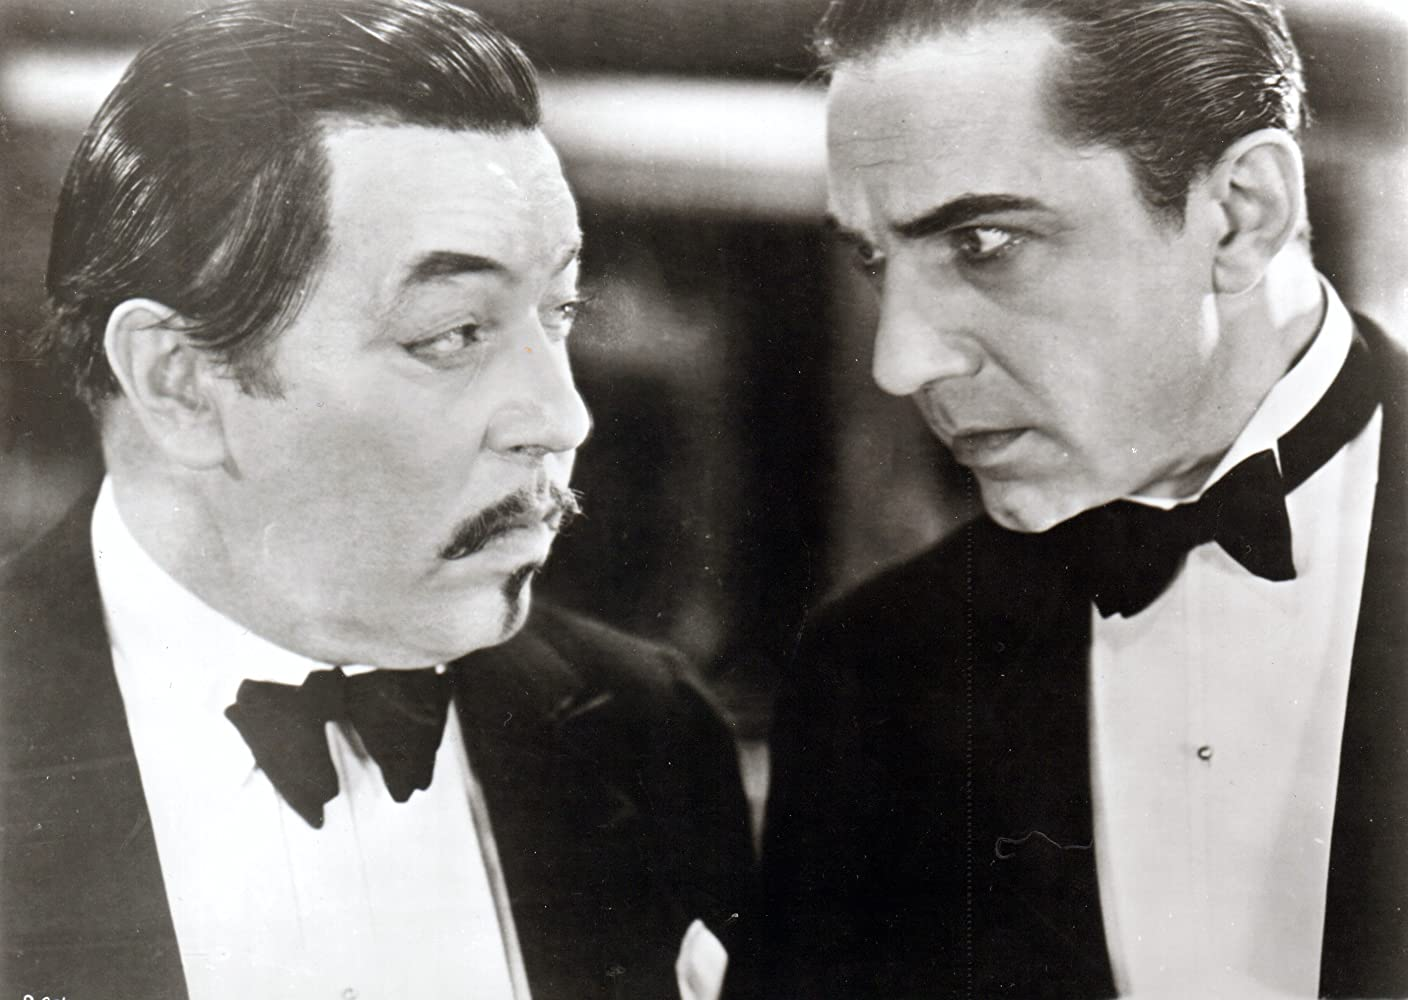 Bela Lugosi and Warner Oland in The Black Camel (1931)